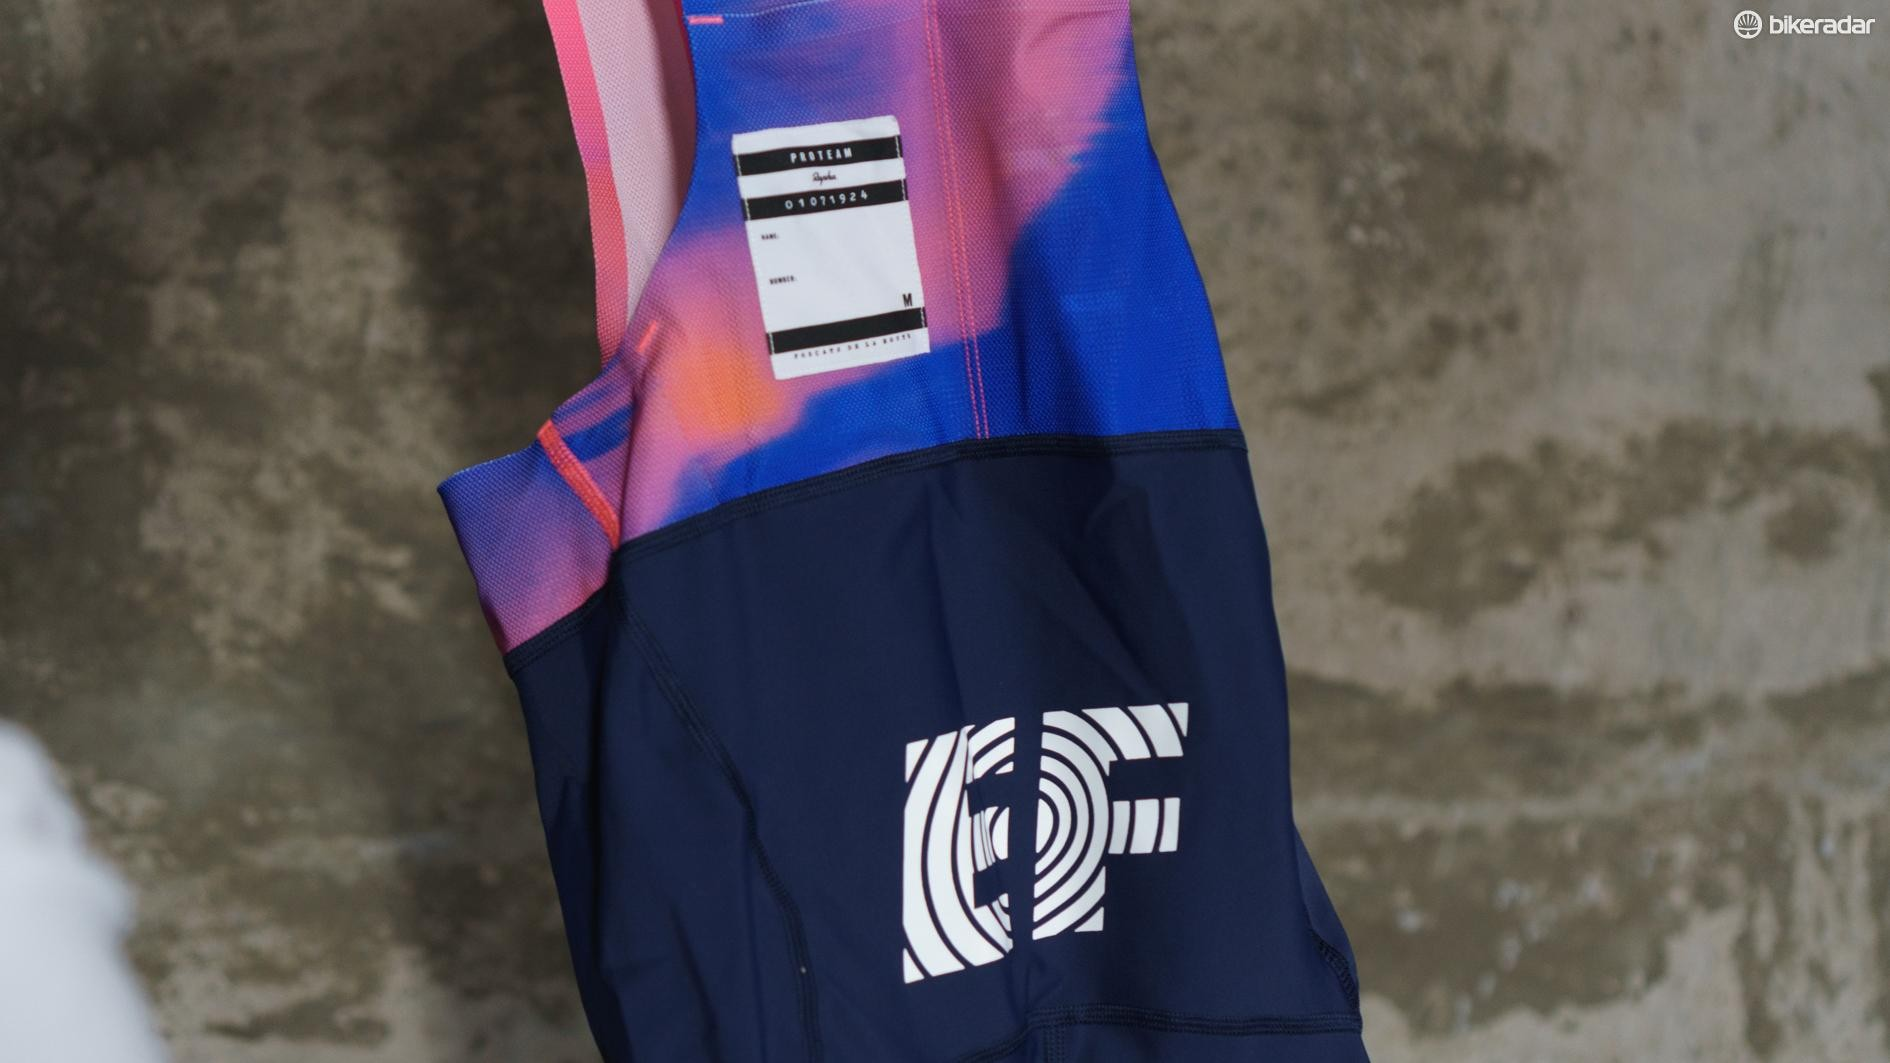 The Education First logo dominates the rear section of the bib shorts